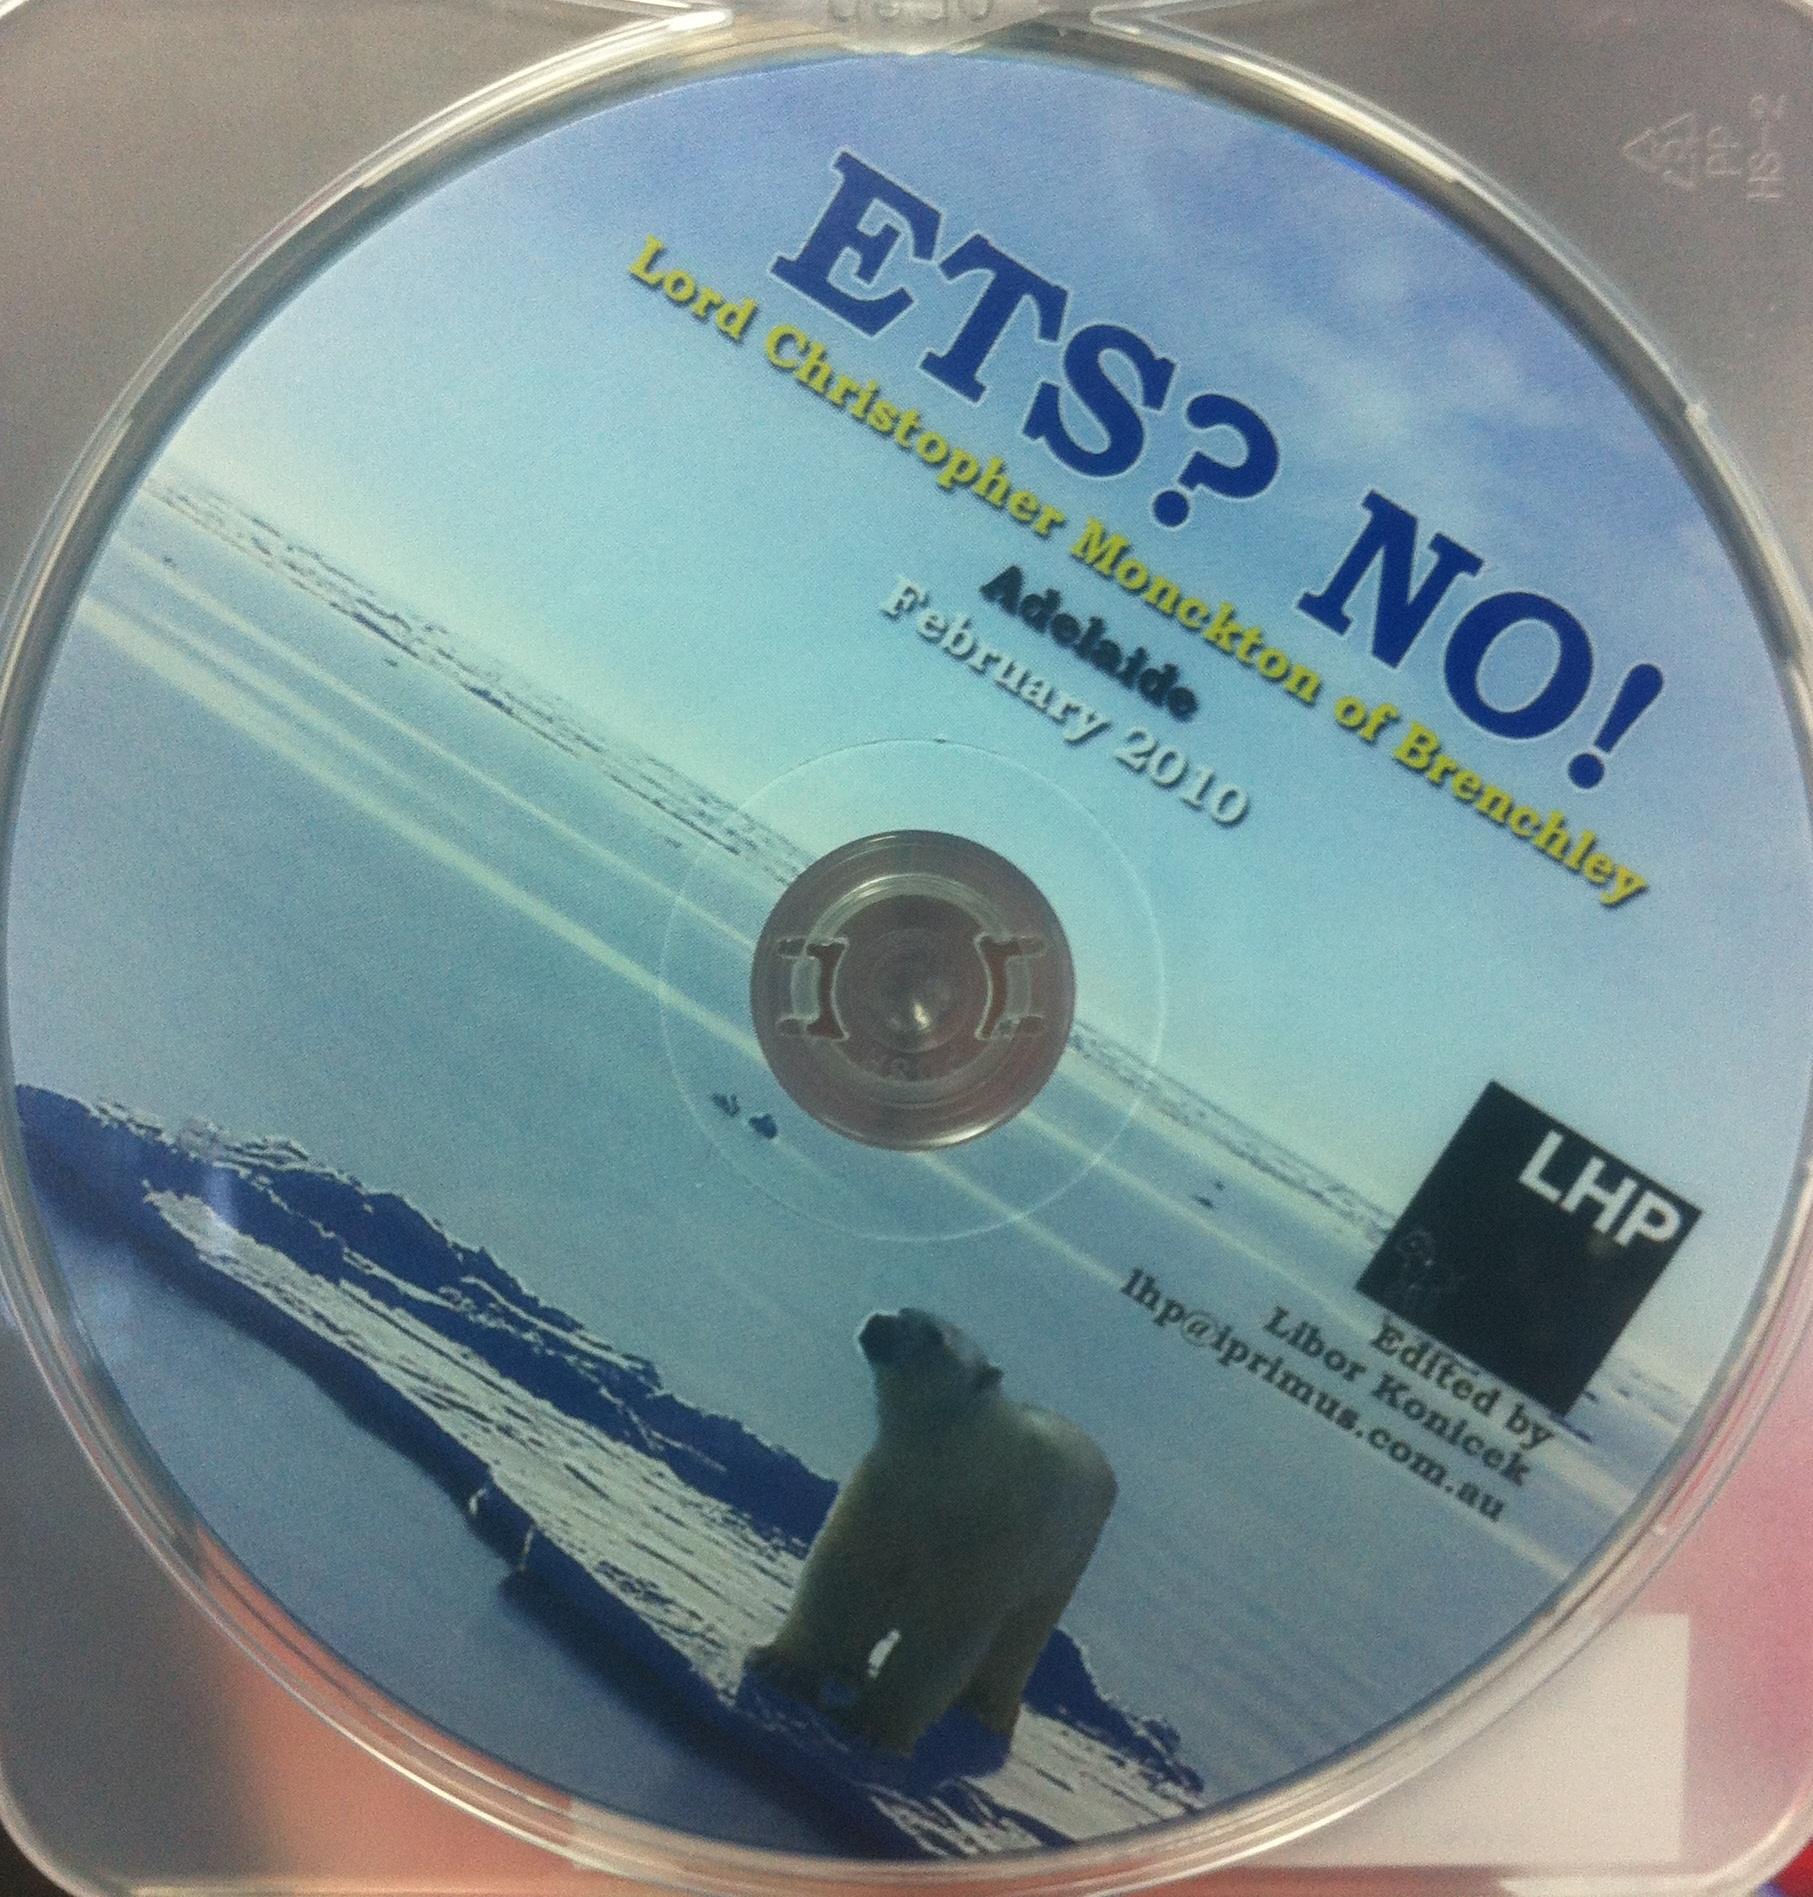 DVD ETS? No! / Christopher Monckton